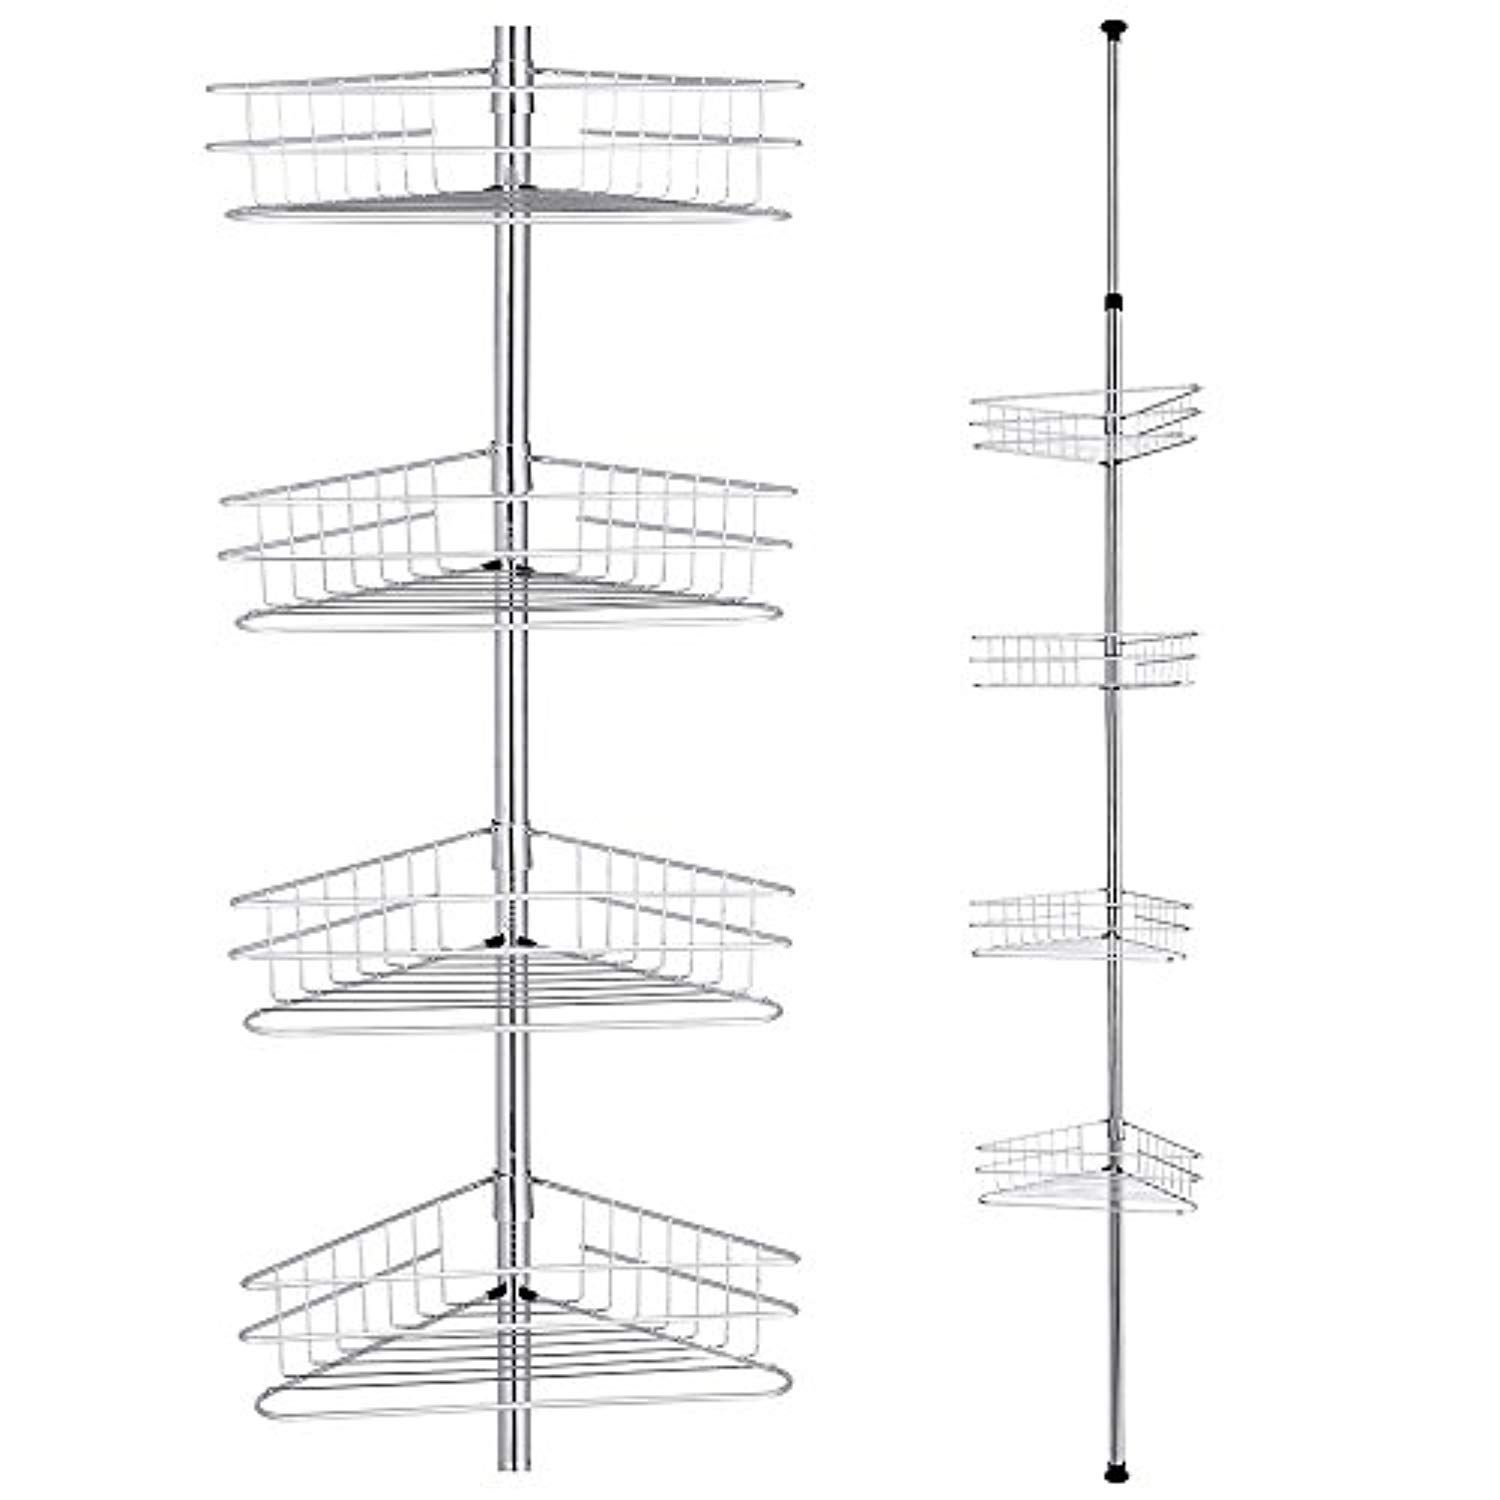 Yescom 4 Tier Metal Bathroom Telescopic Corner Shower Shelf Caddy Pole Wall Rack Storage Organizer Soap Holder Shower Shelves Shower Rack Metal Bathroom Shelf